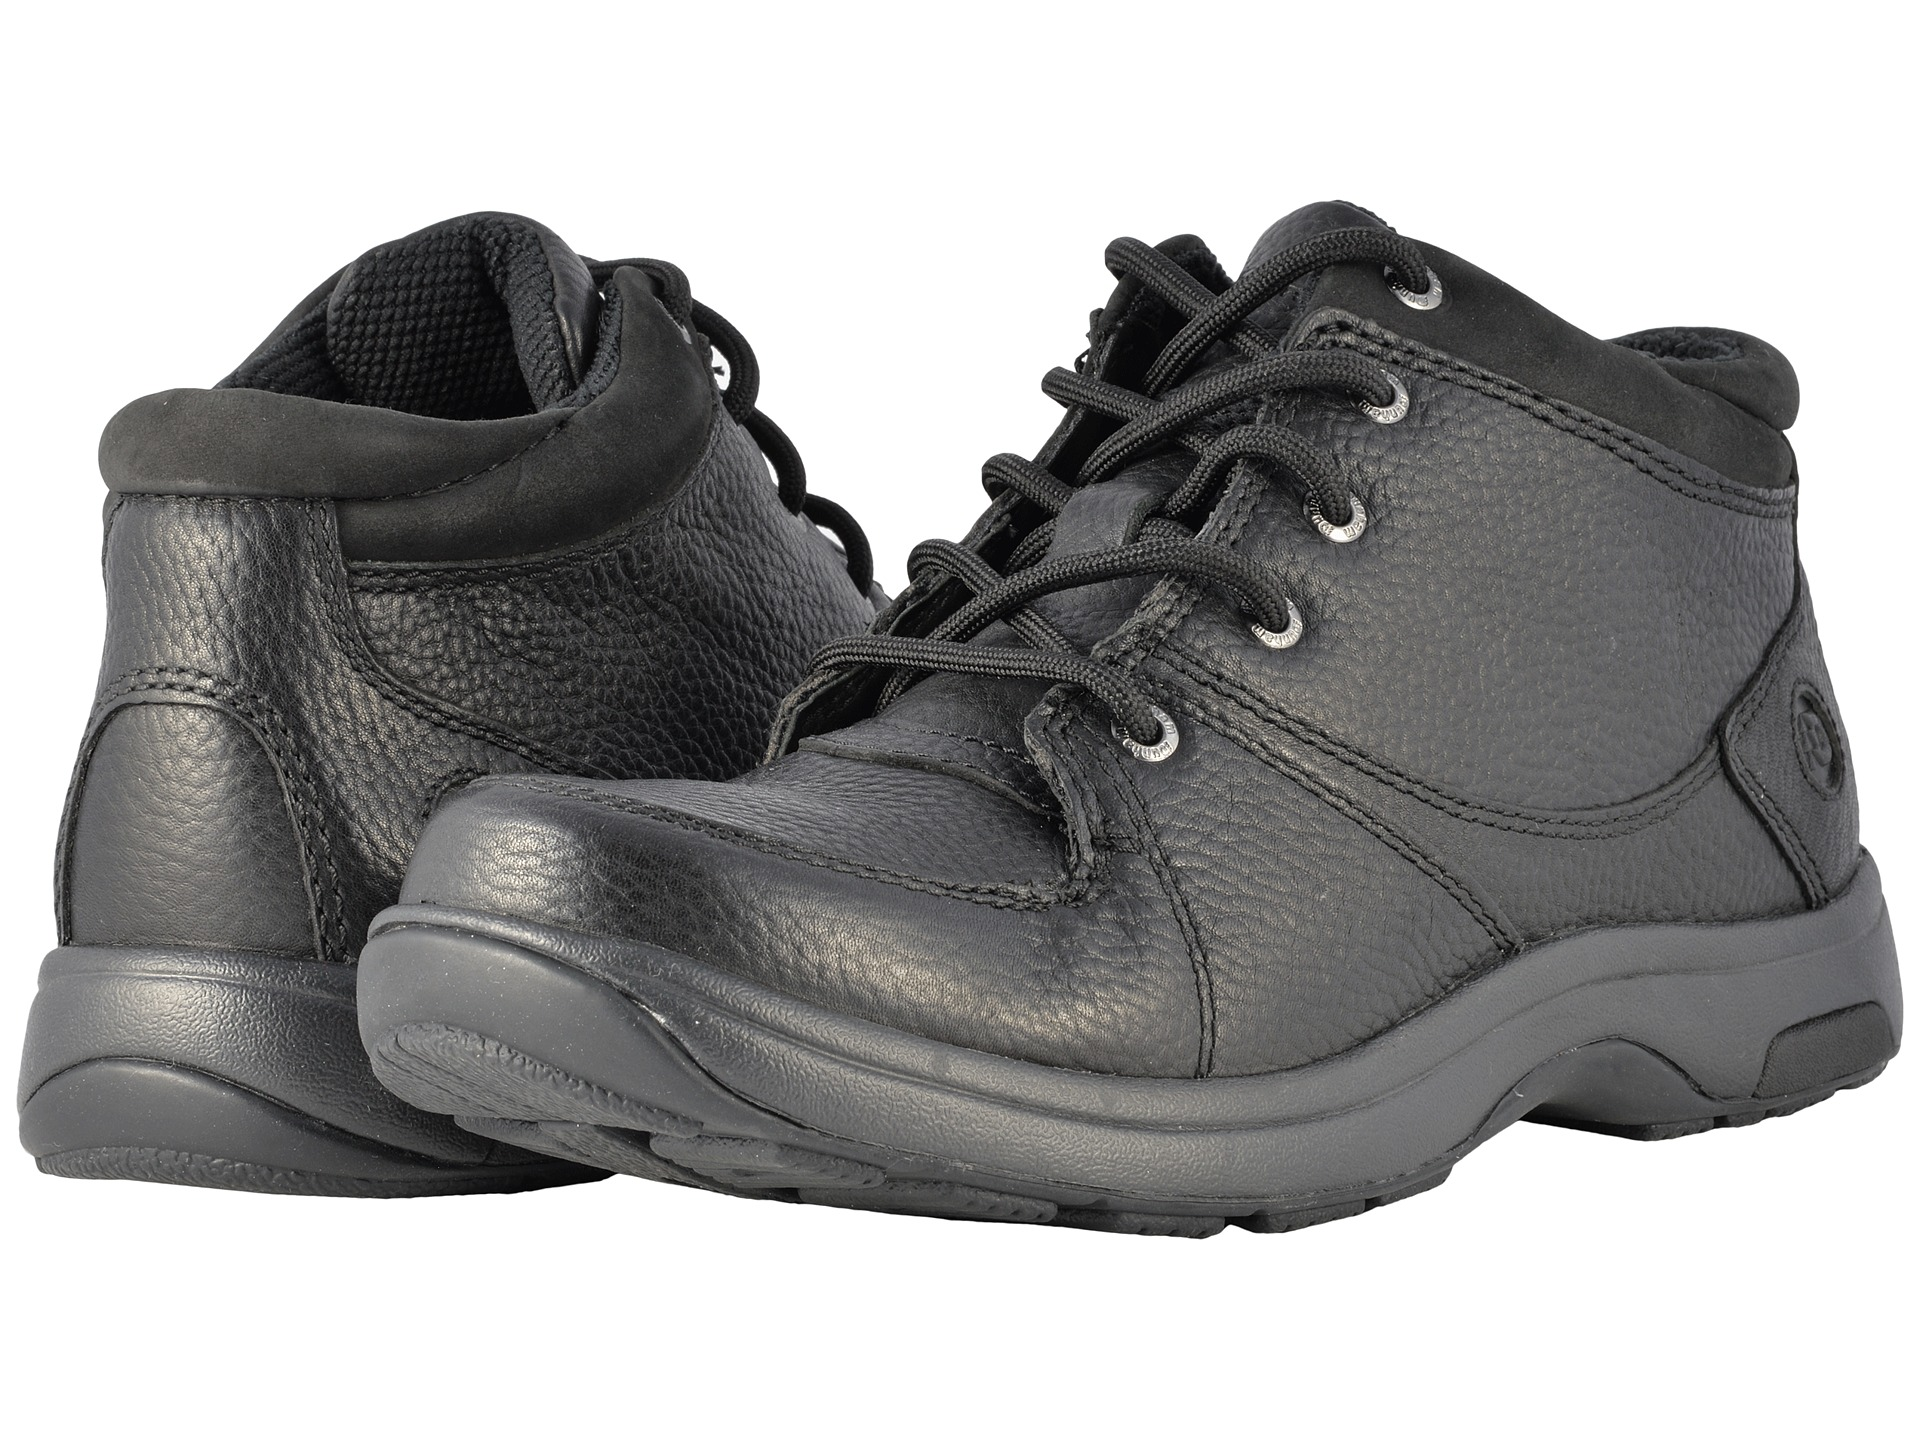 Mens Rubber Boots Size 16, Shoes, 16 | Shipped Free at Zappos